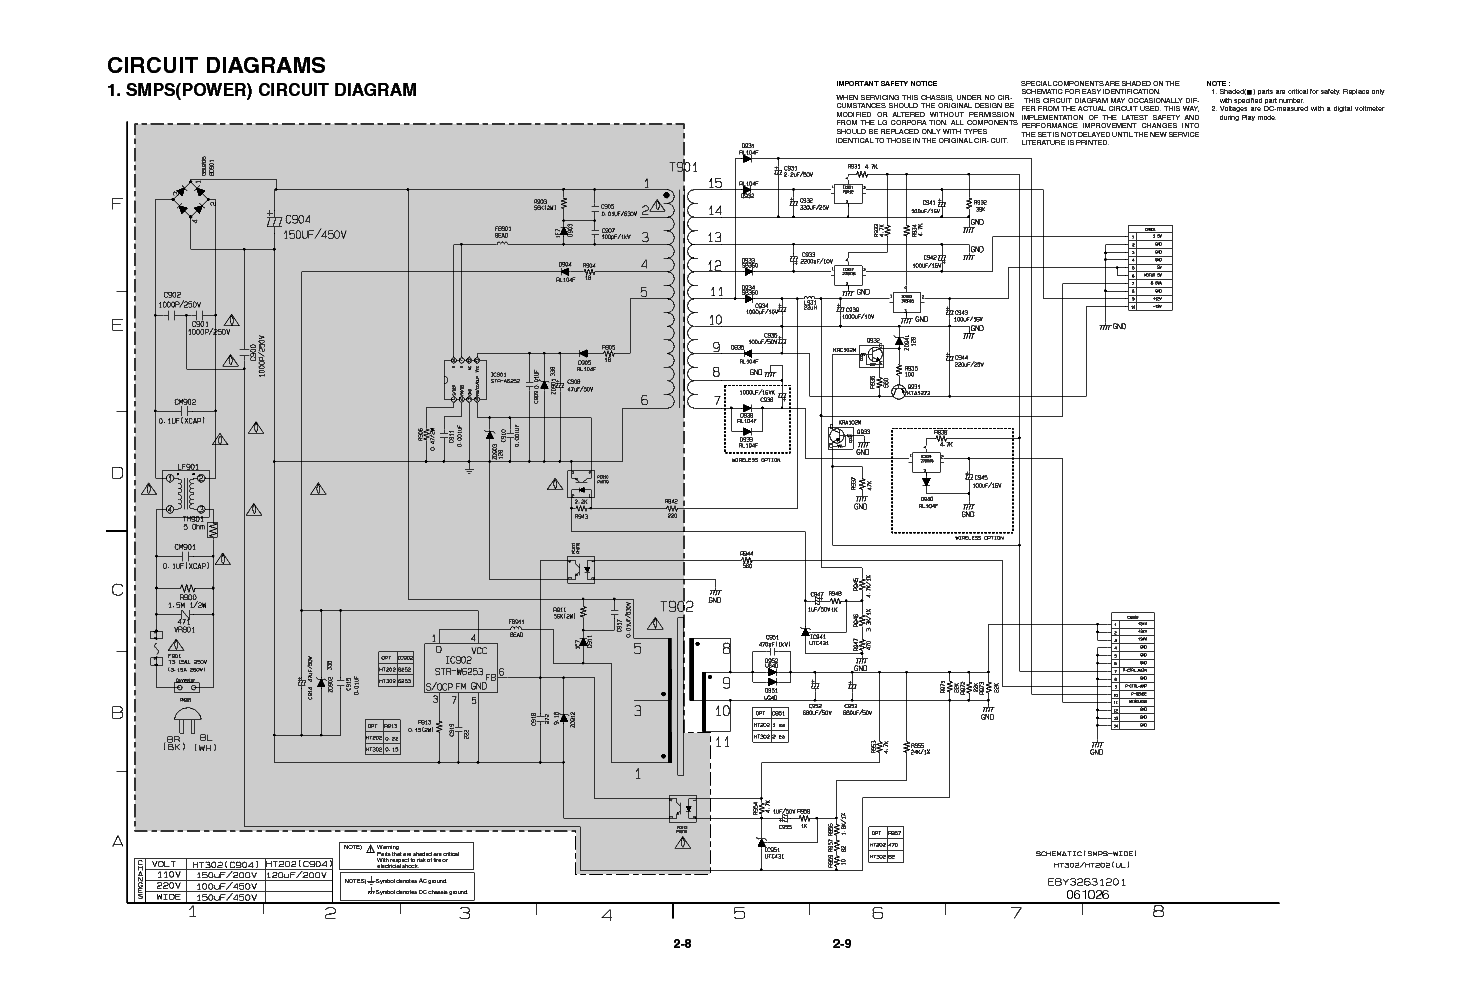 Luxury Smps Service Manual Sketch - Wiring Diagram Ideas - guapodugh.com